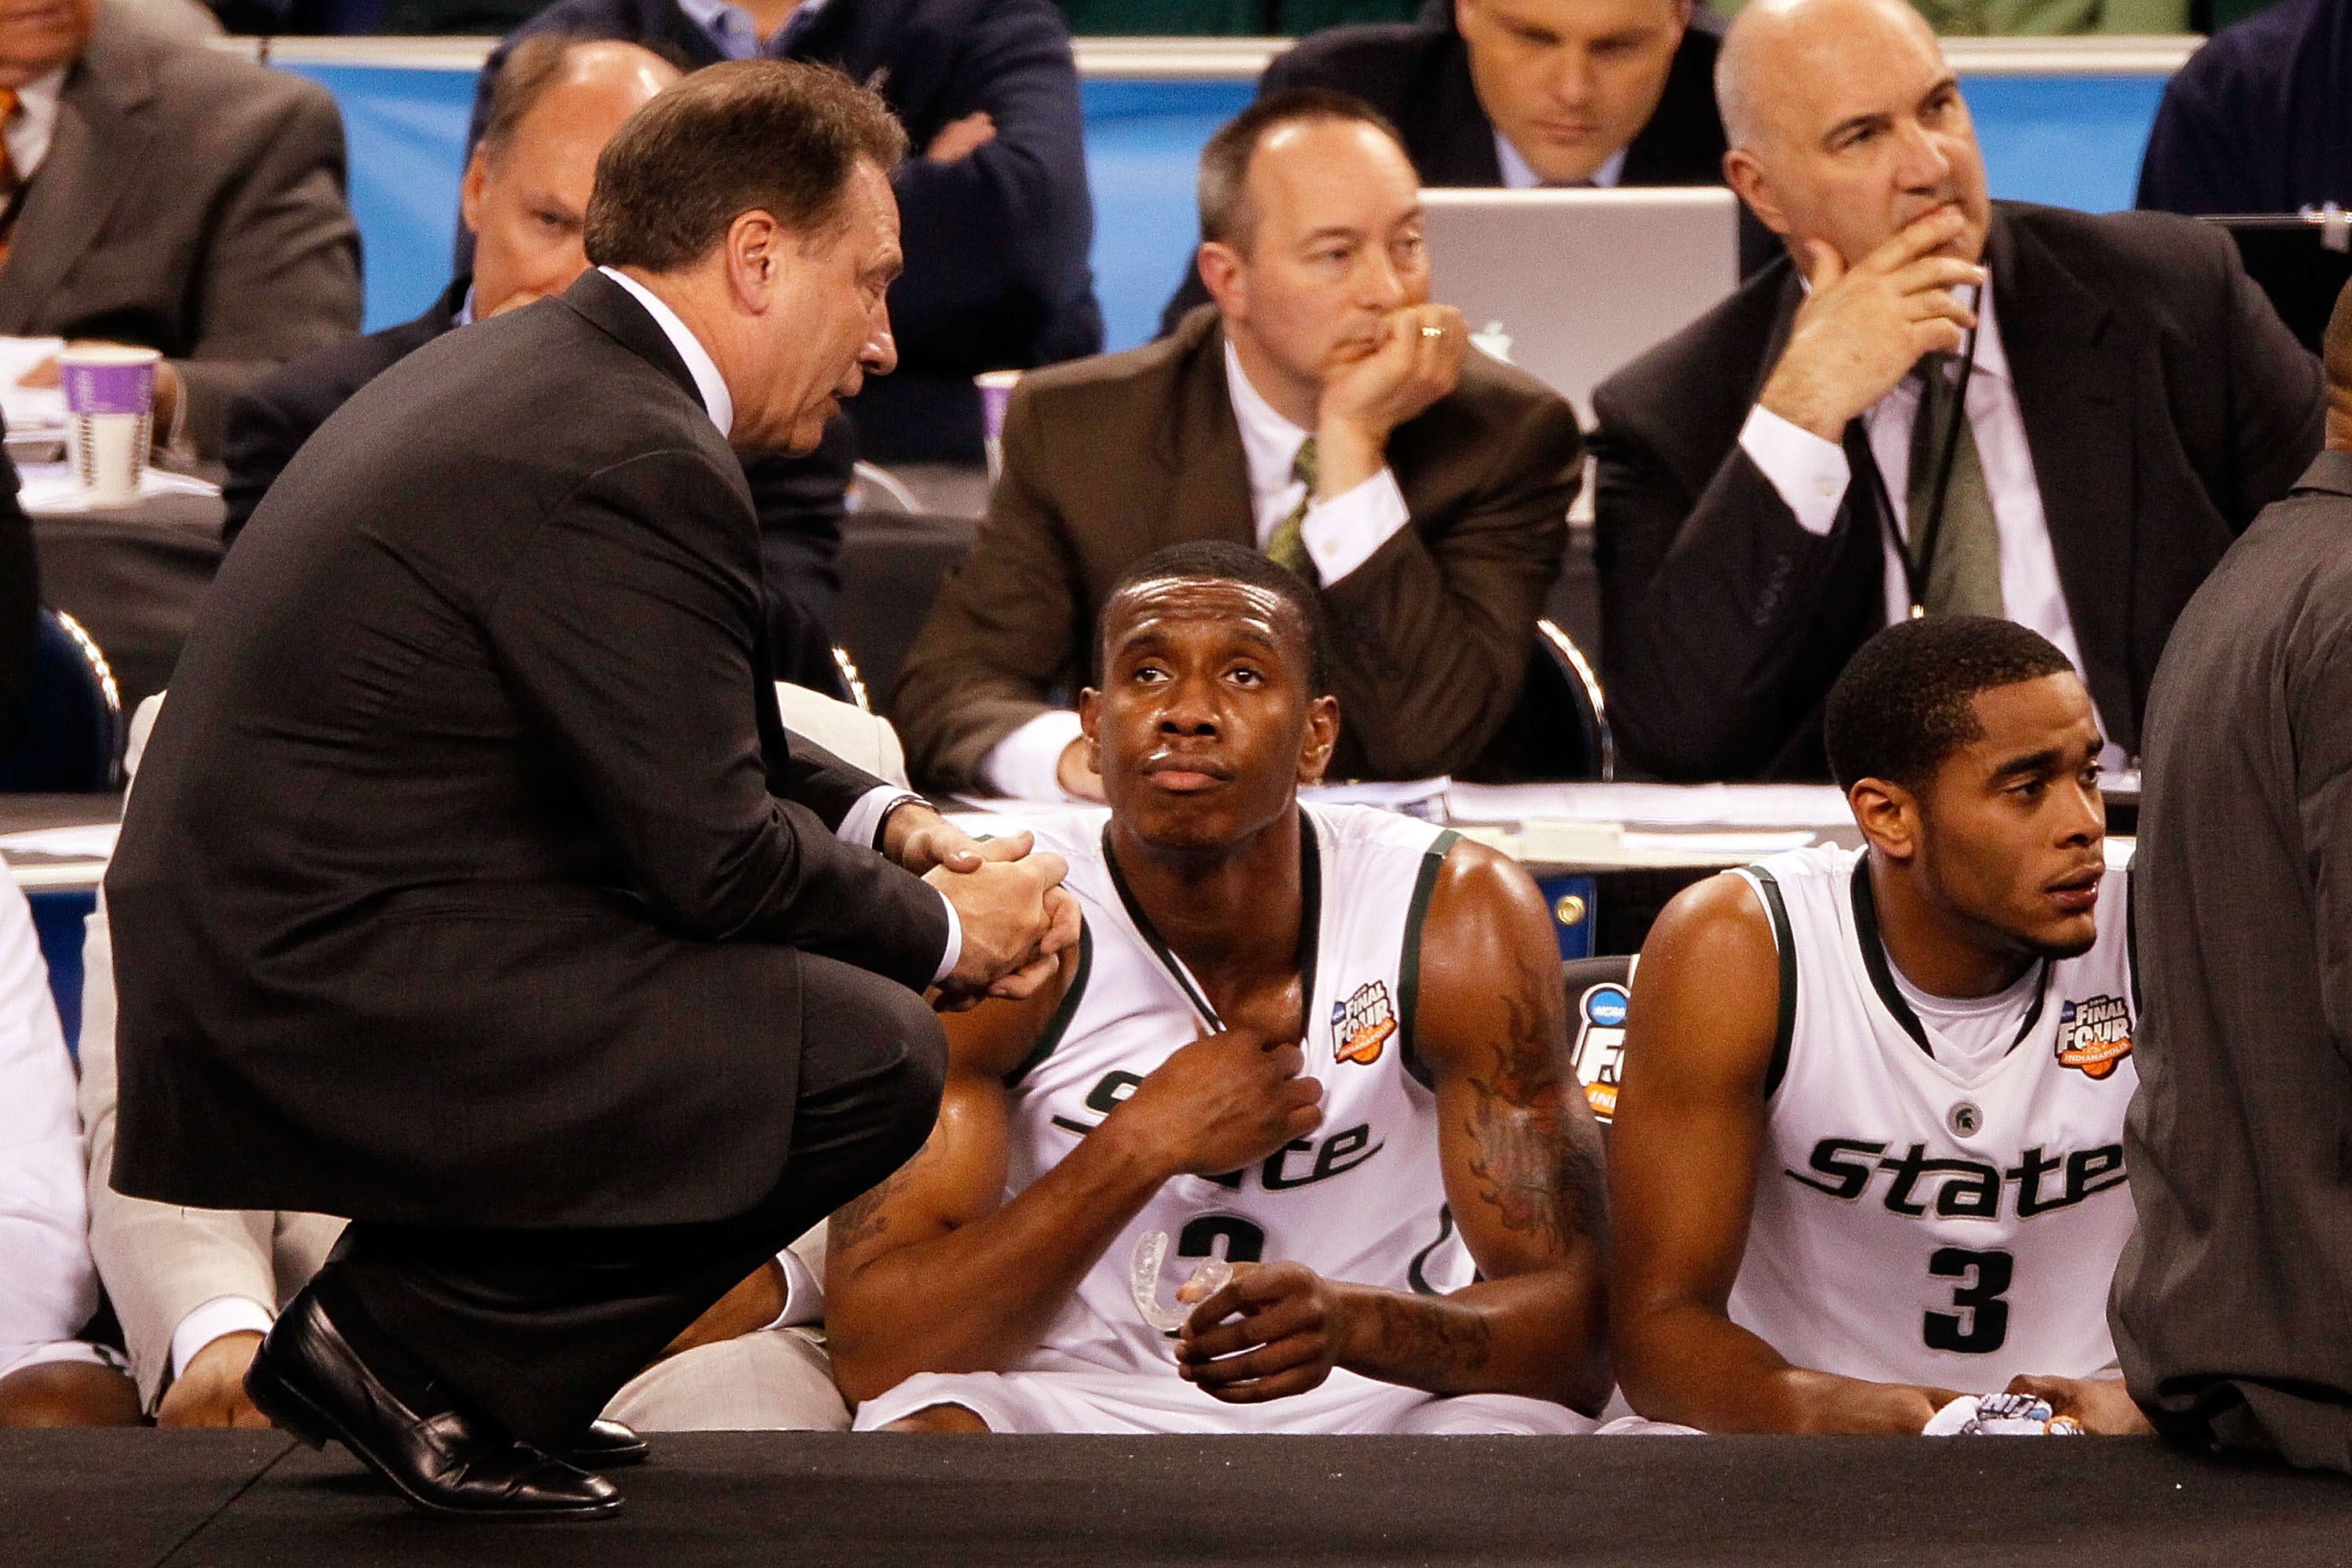 INDIANAPOLIS - APRIL 03:  Head coach Tom Izzo of the Michigan State Spartans talks with Raymar Morgan #2 from the sideline while taking on the Butler Bulldogs during the National Semifinal game of the 2010 NCAA Division I Men's Basketball Championship on